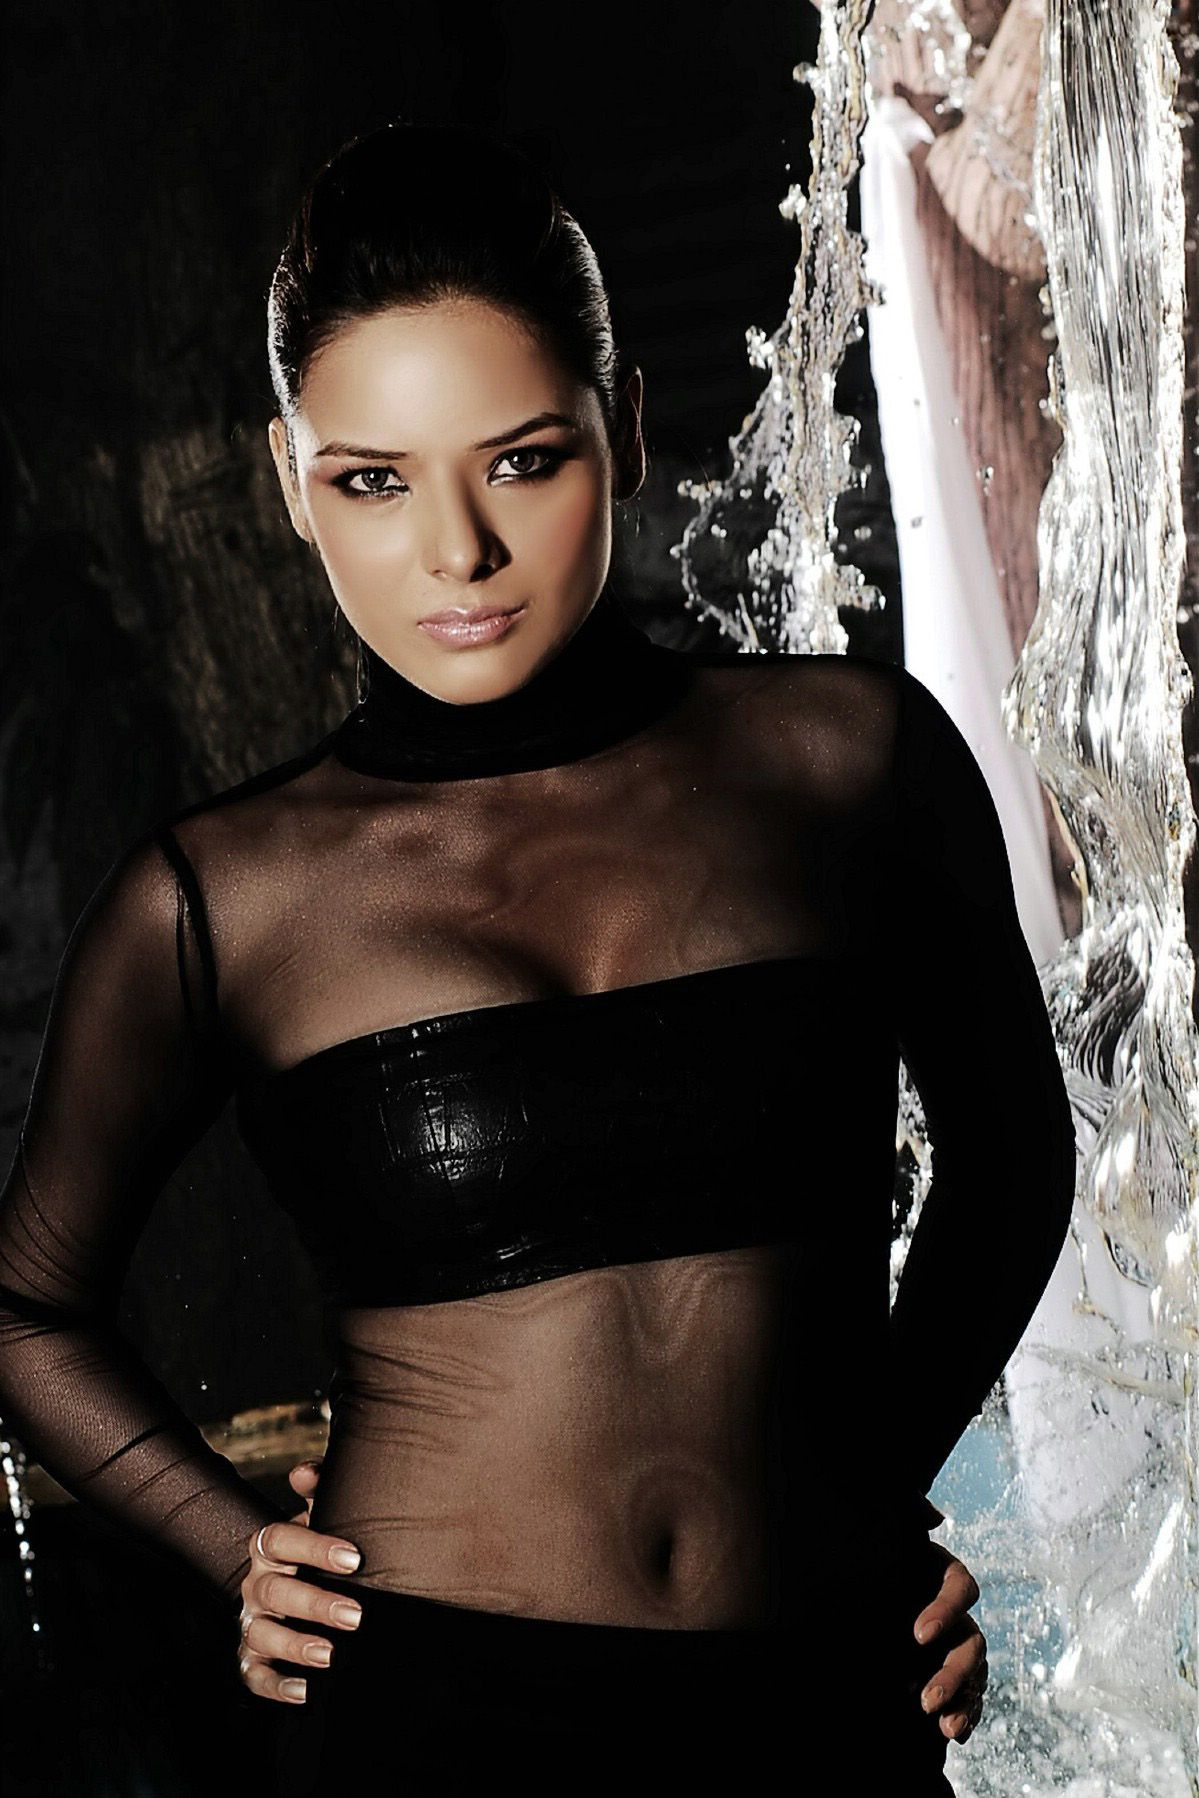 Udita Goswami nudes (61 photos), Topless, Cleavage, Instagram, cameltoe 2015